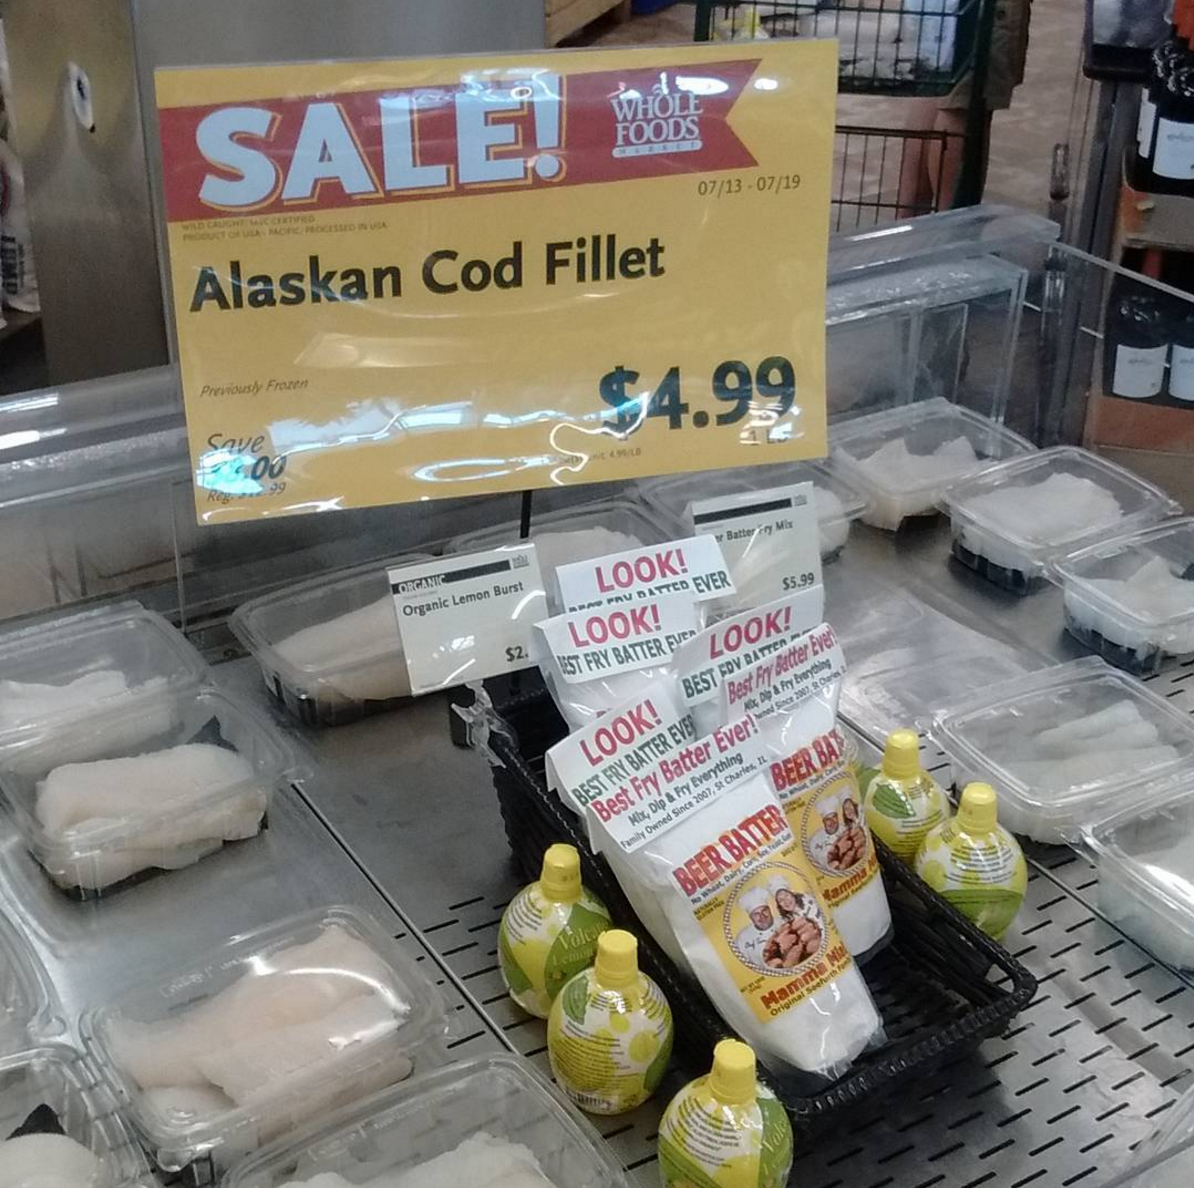 Cheapest Things To Buy At Whole Foods